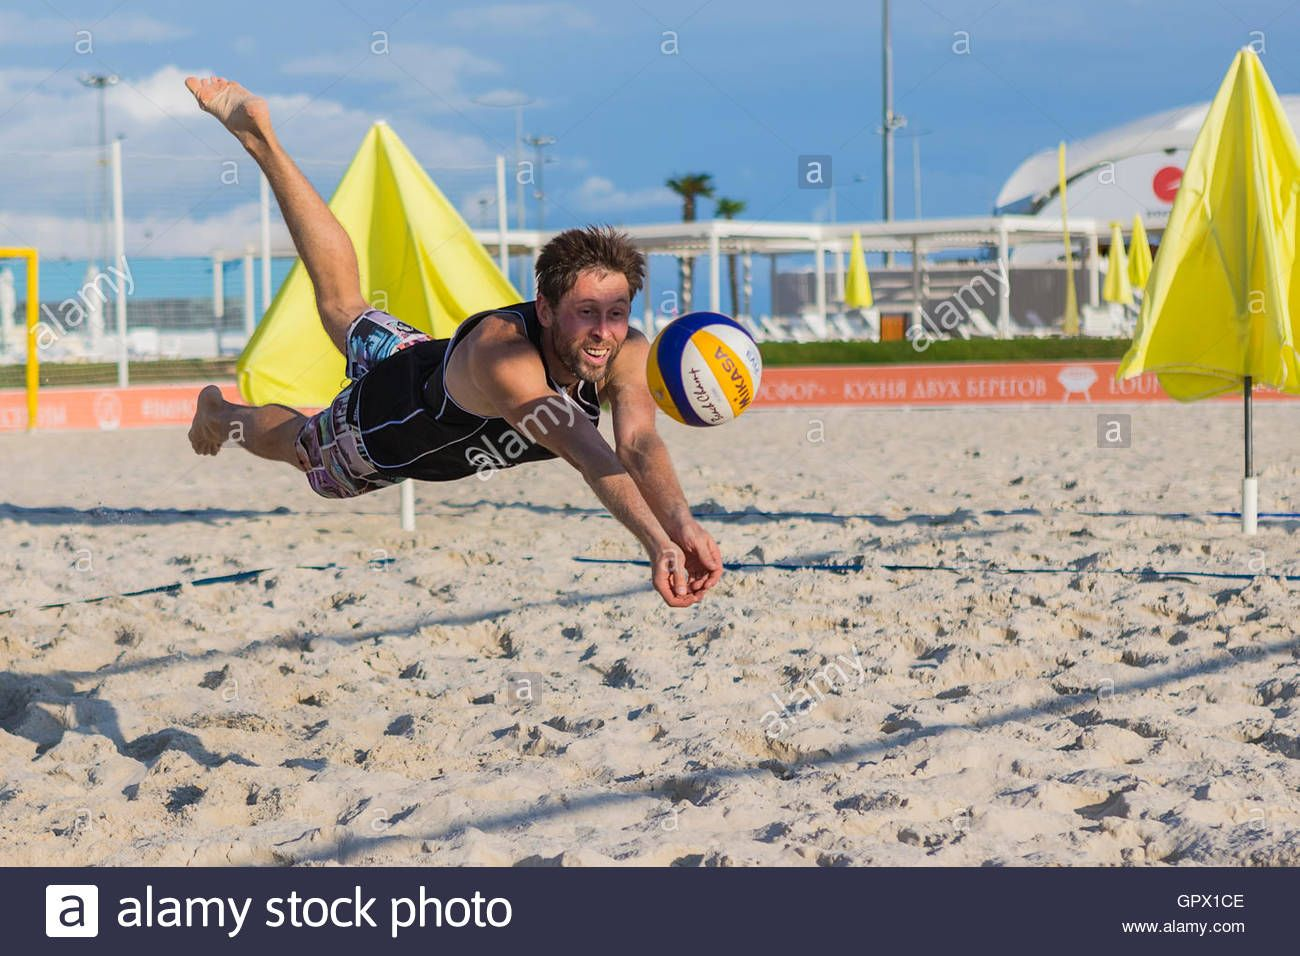 Download This Stock Image Young Man In Motion Plays In Beach Volleyball Beach Volleyball Photo Stock Photos